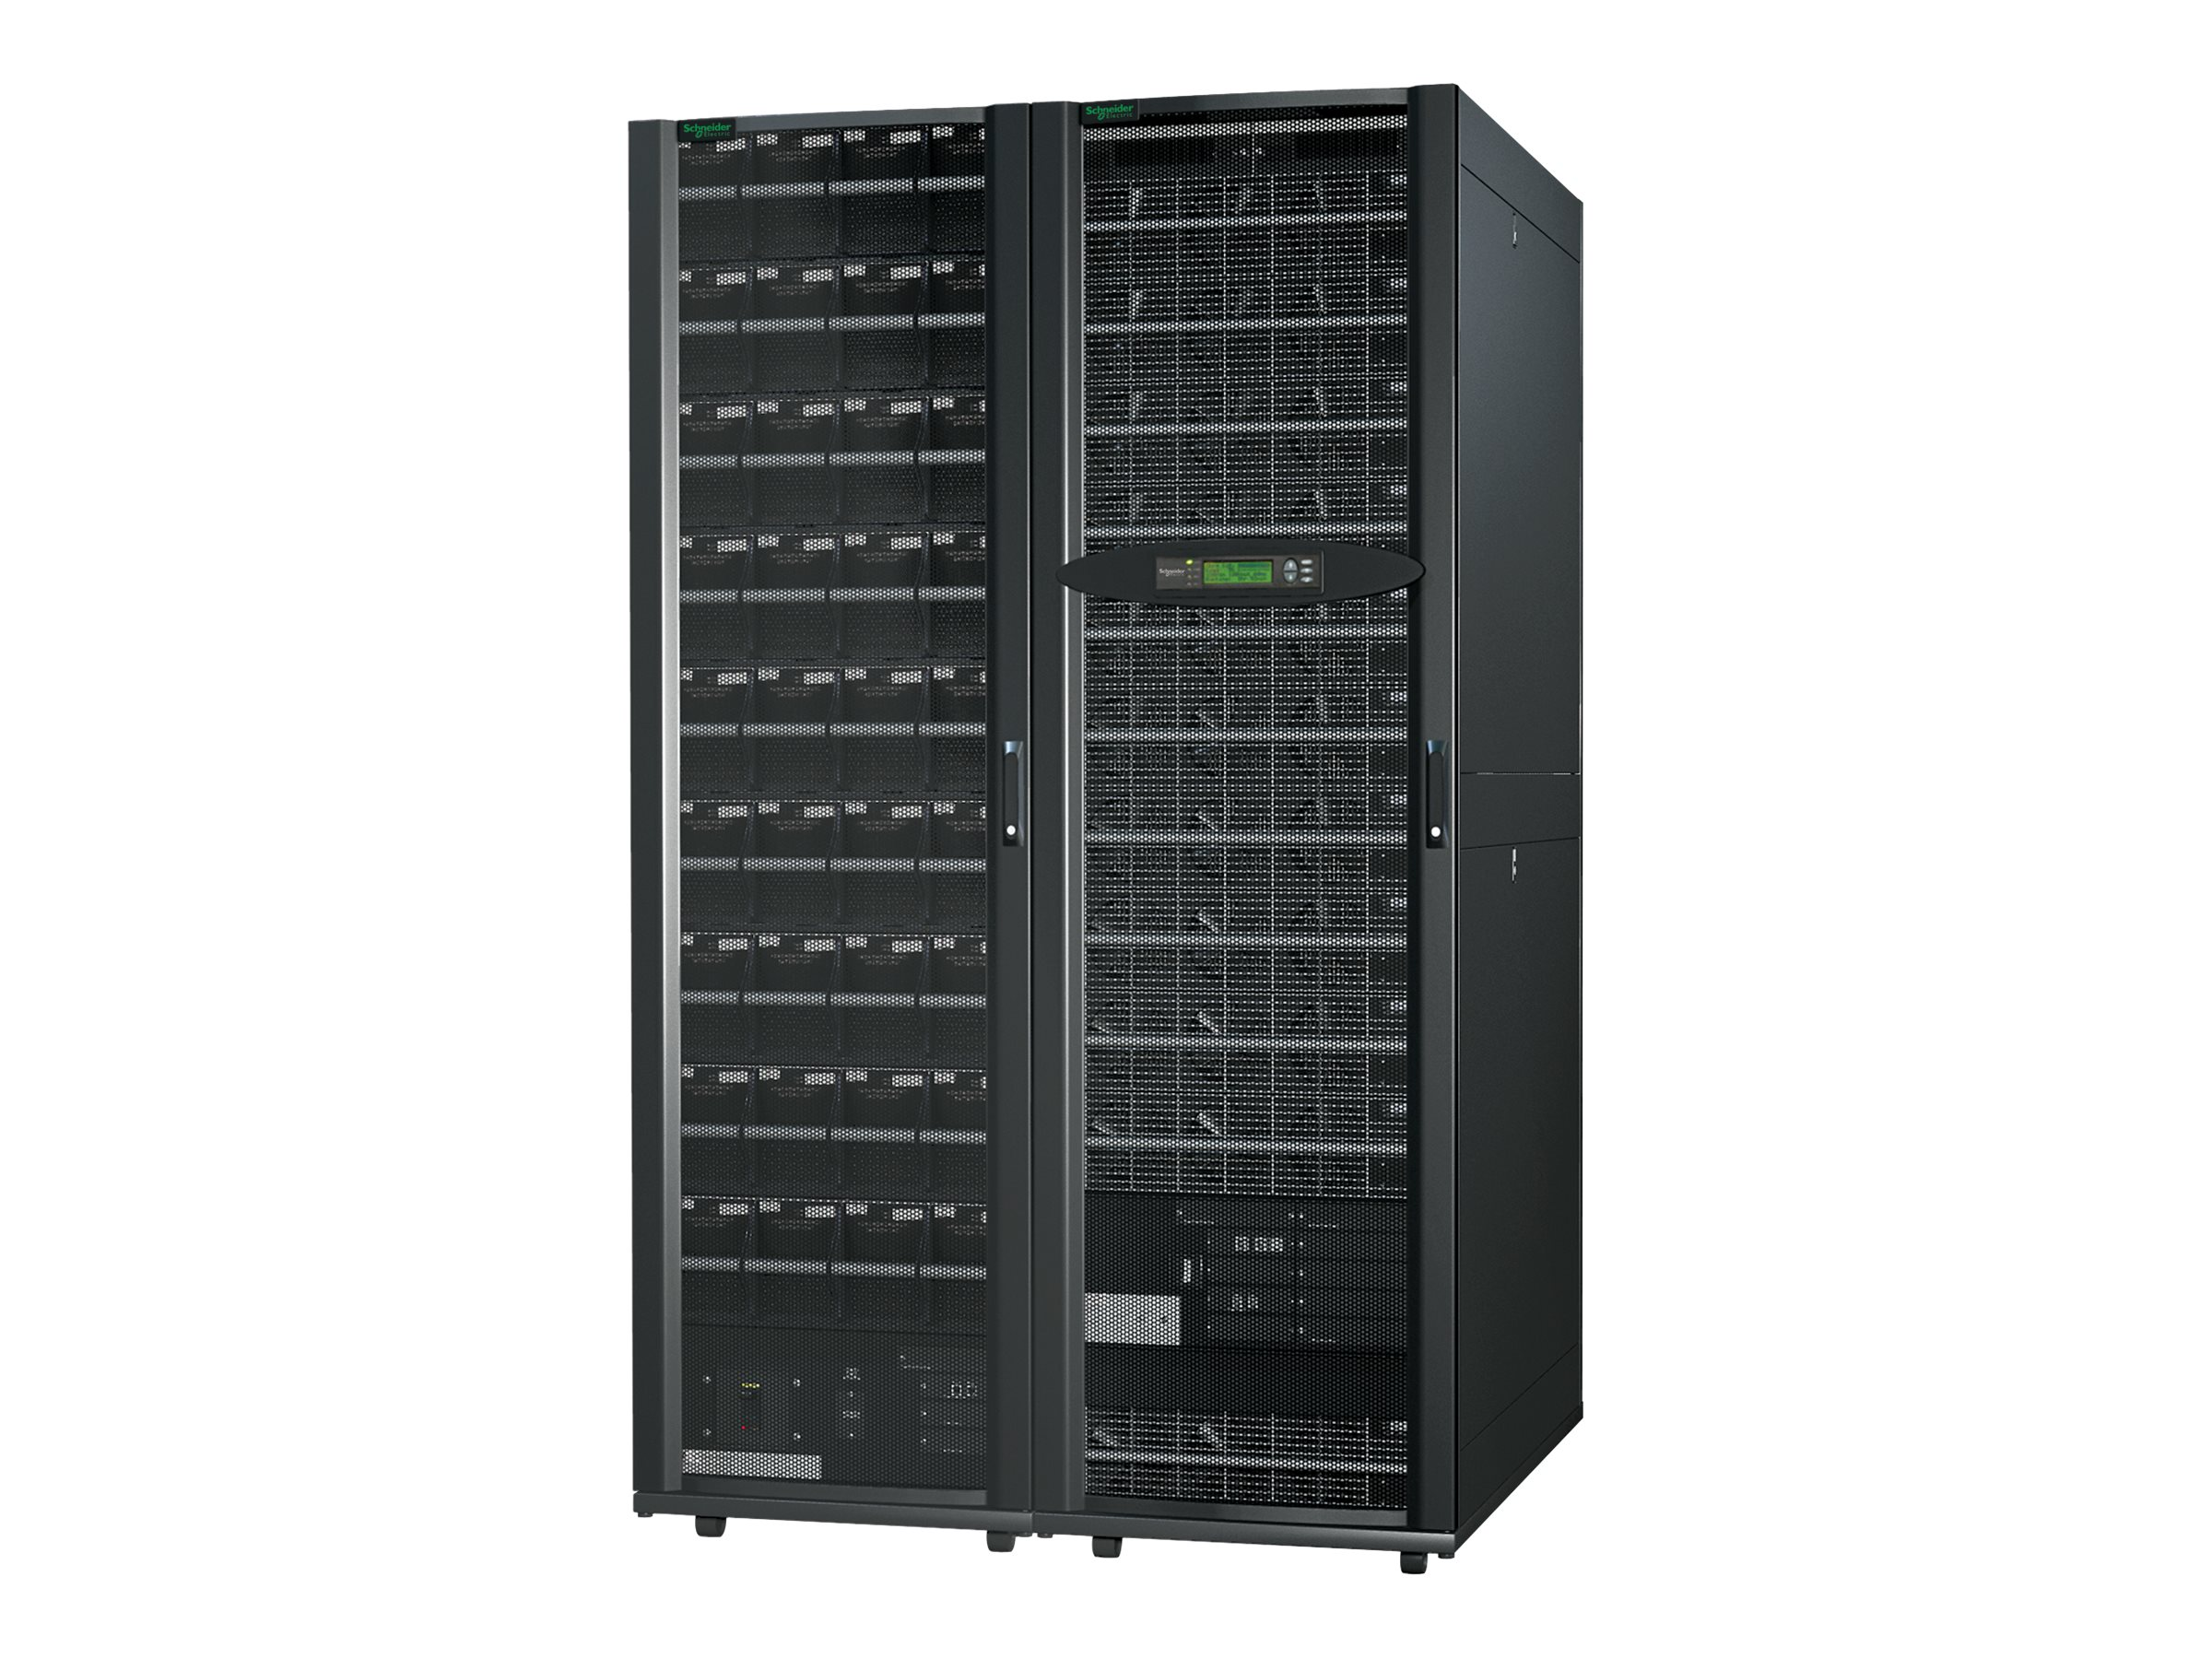 APC Symmetra PX 100kW Scalable to 100kW, 208V with Startup, SY100K100F, 17630826, Battery Backup/UPS